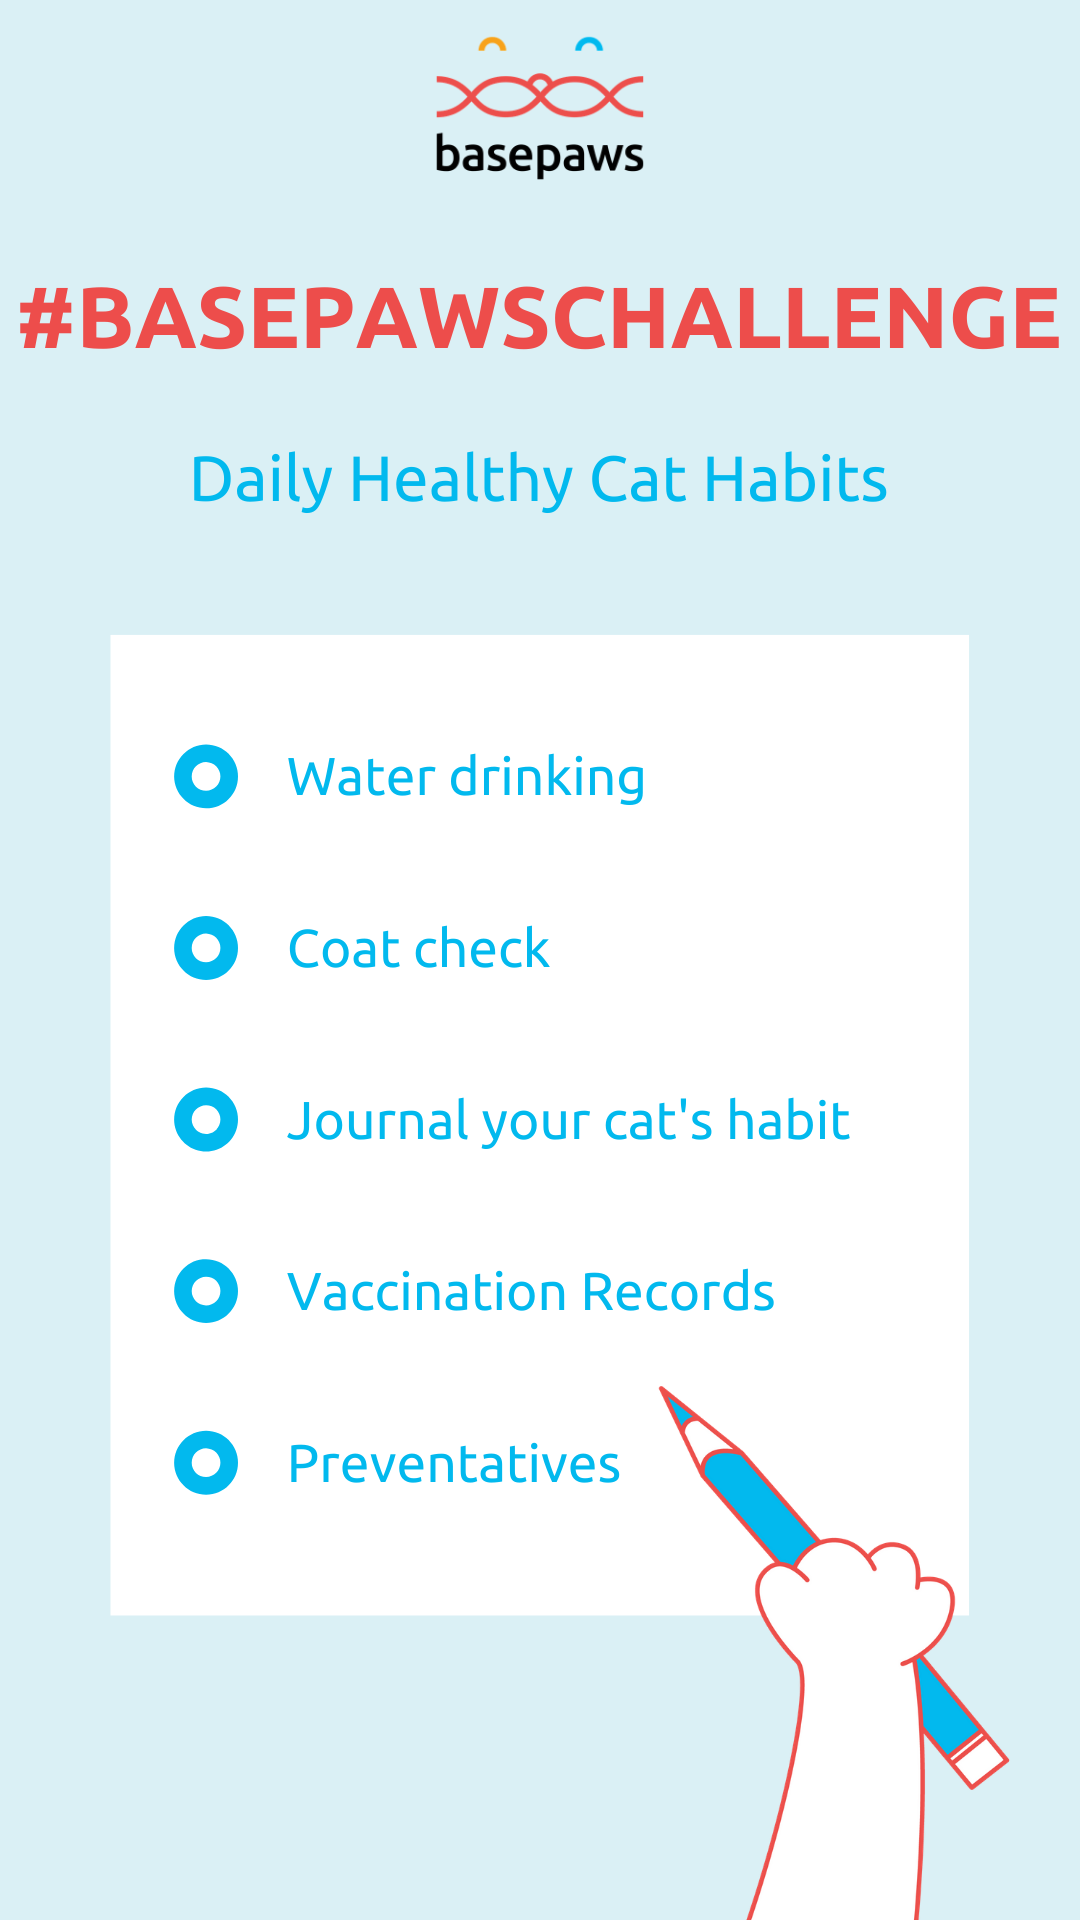 Week 1 - Checklist for your Basepaws Cat Challenge